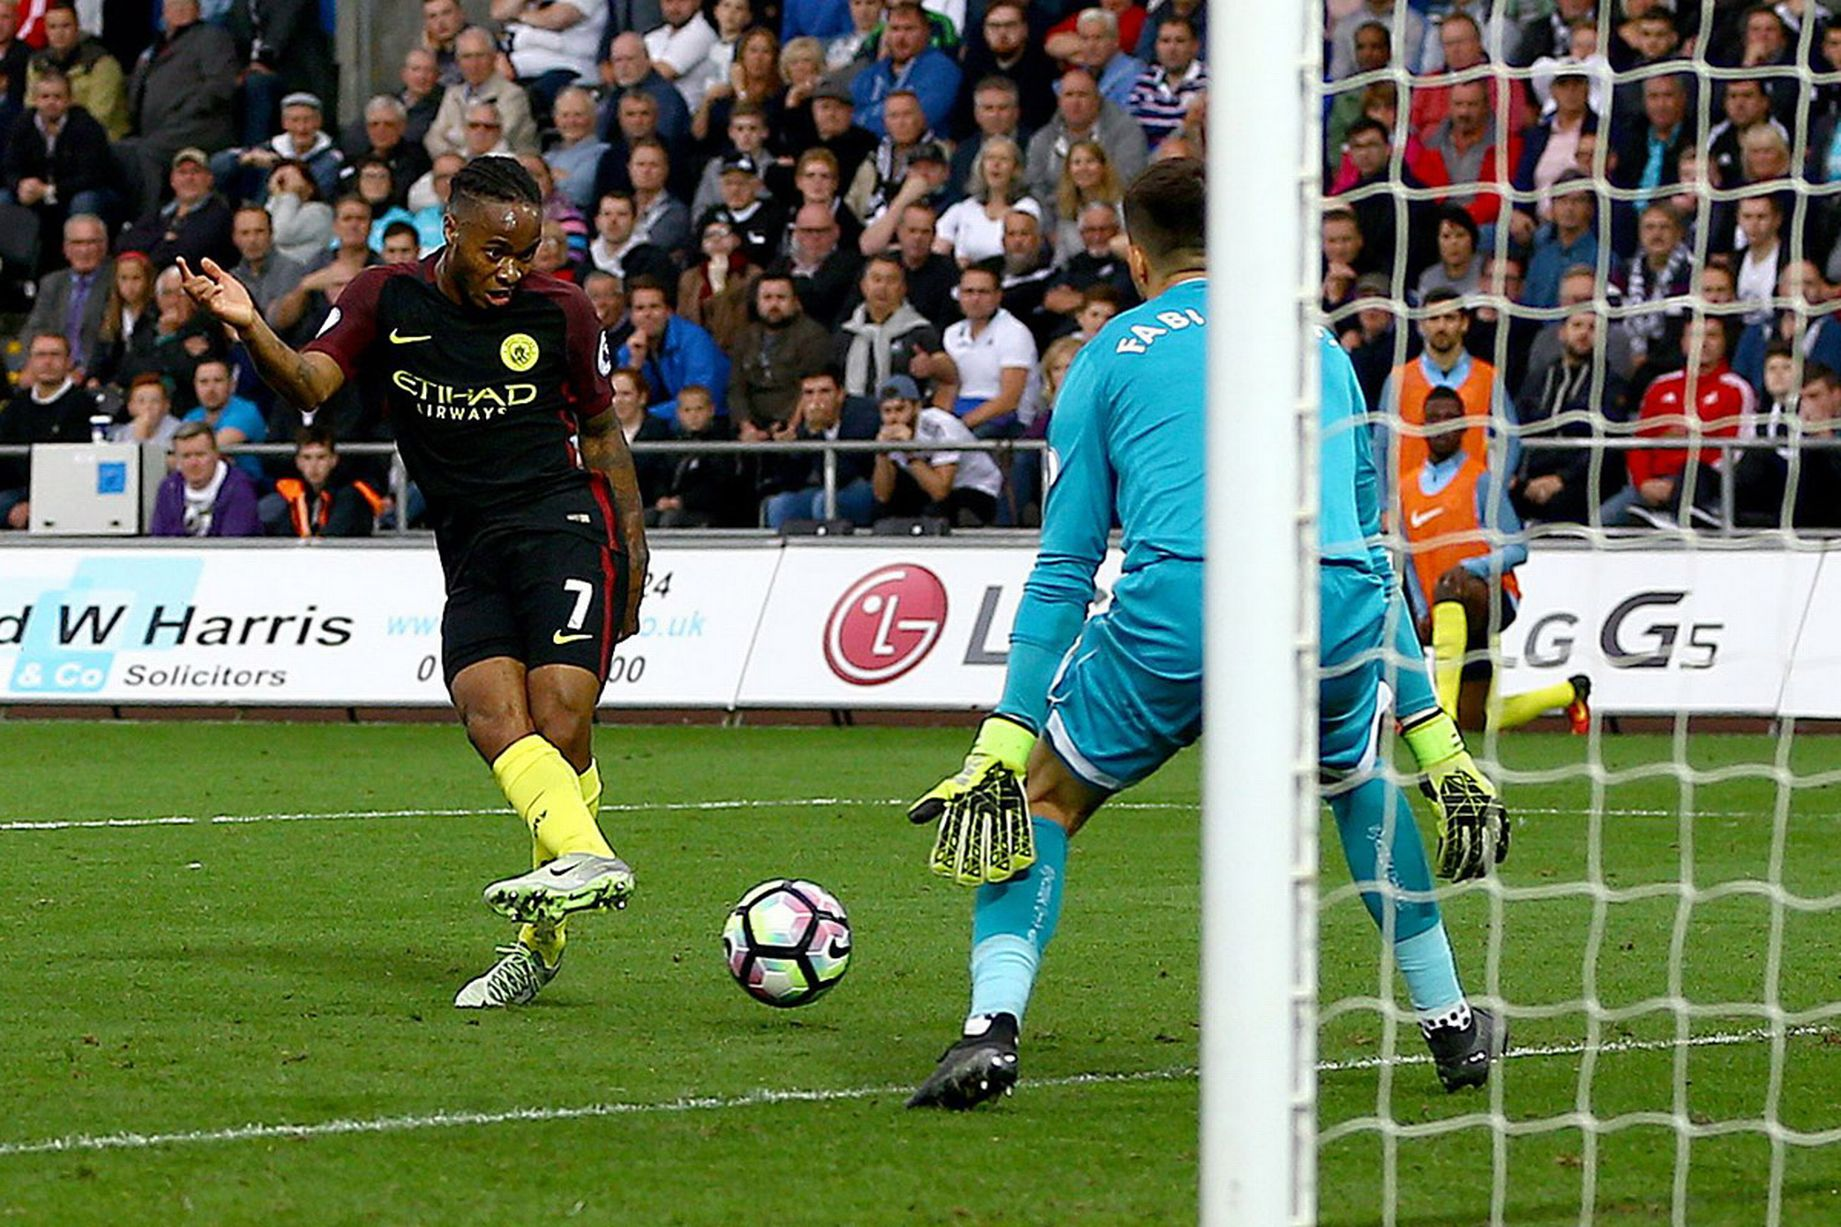 Sterling on the rise - Raheem deposits the ball in the back of the Swansea net to secure the 3-1 win.